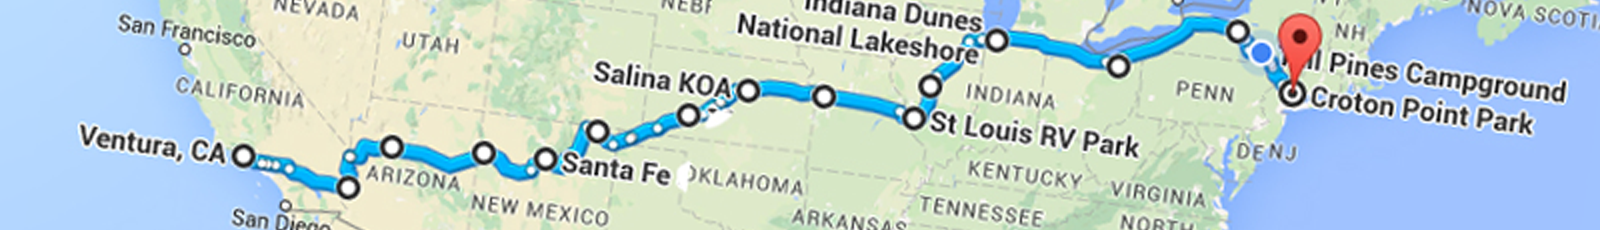 Cross-country trip #14 route